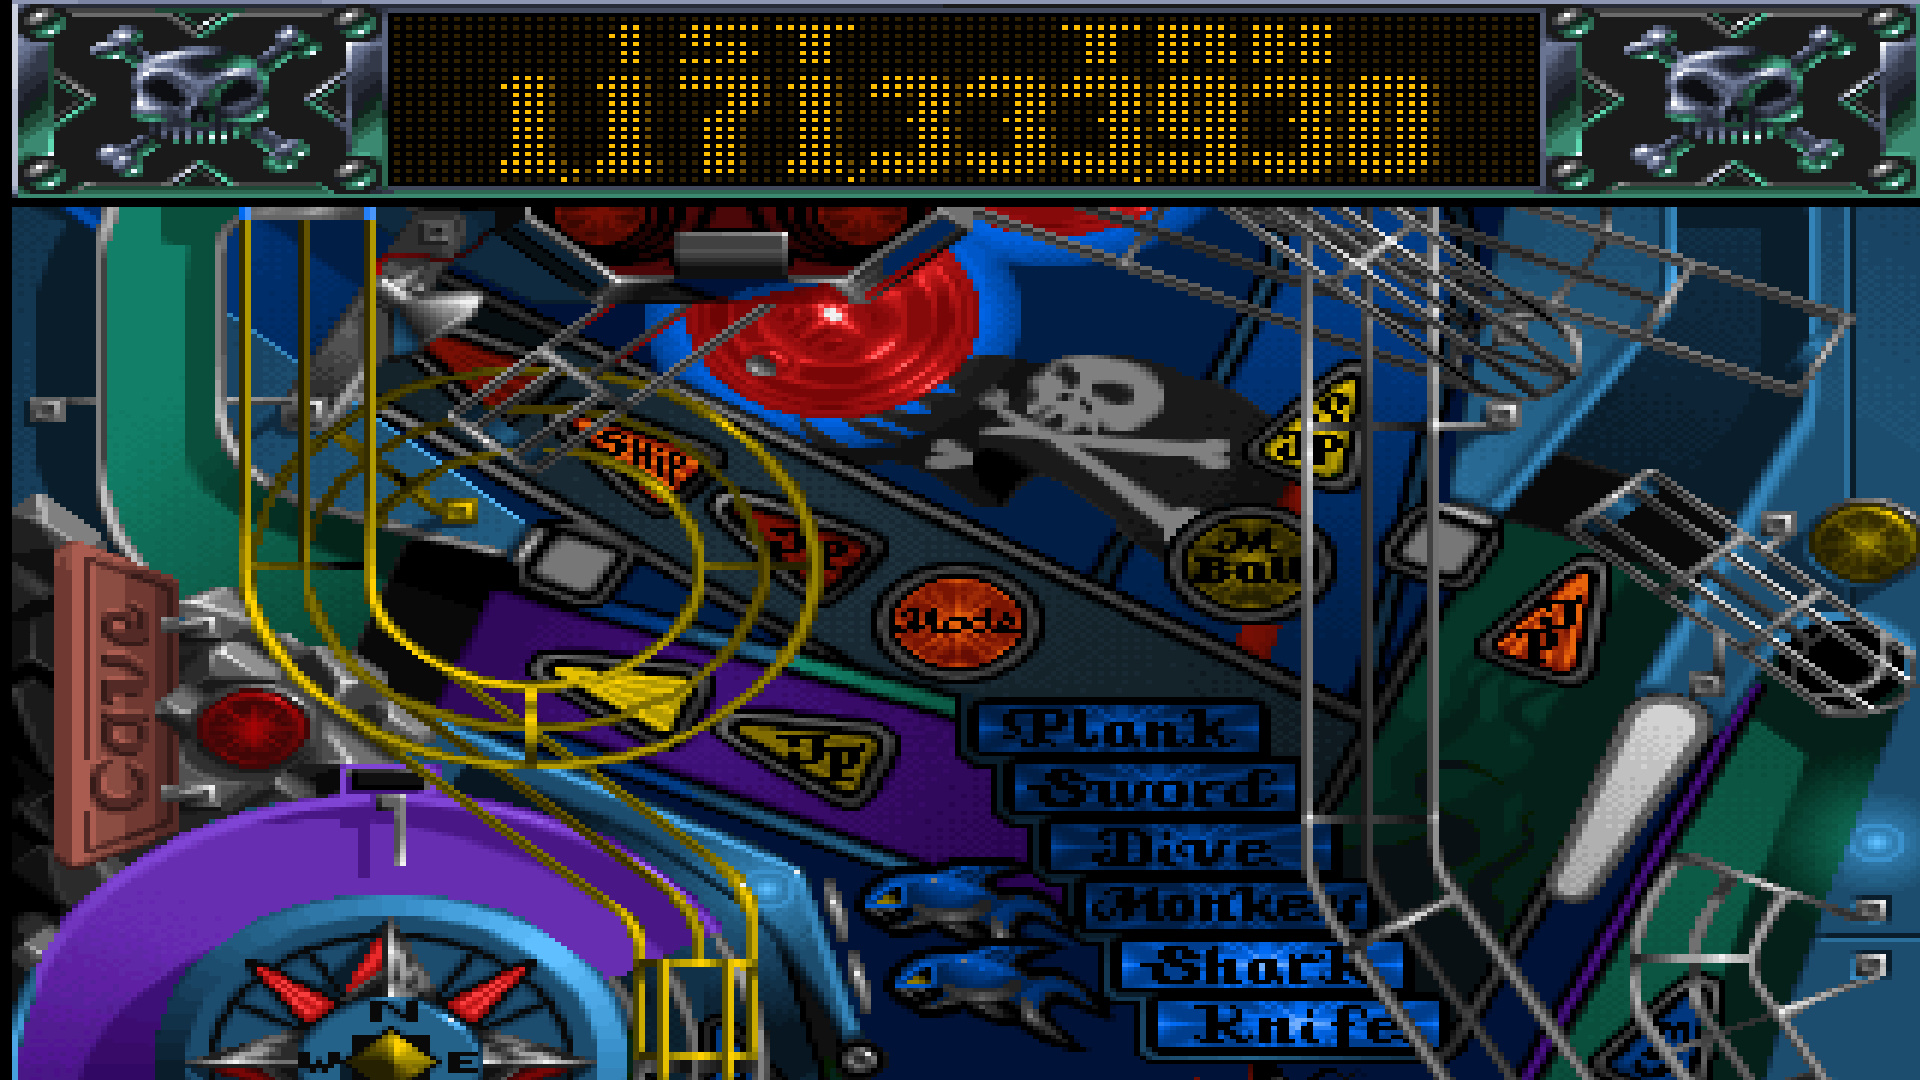 TheTrickster: Slam Tilt: The Pirate (Amiga Emulated) 1,171,333,930 points on 2016-03-24 19:18:59